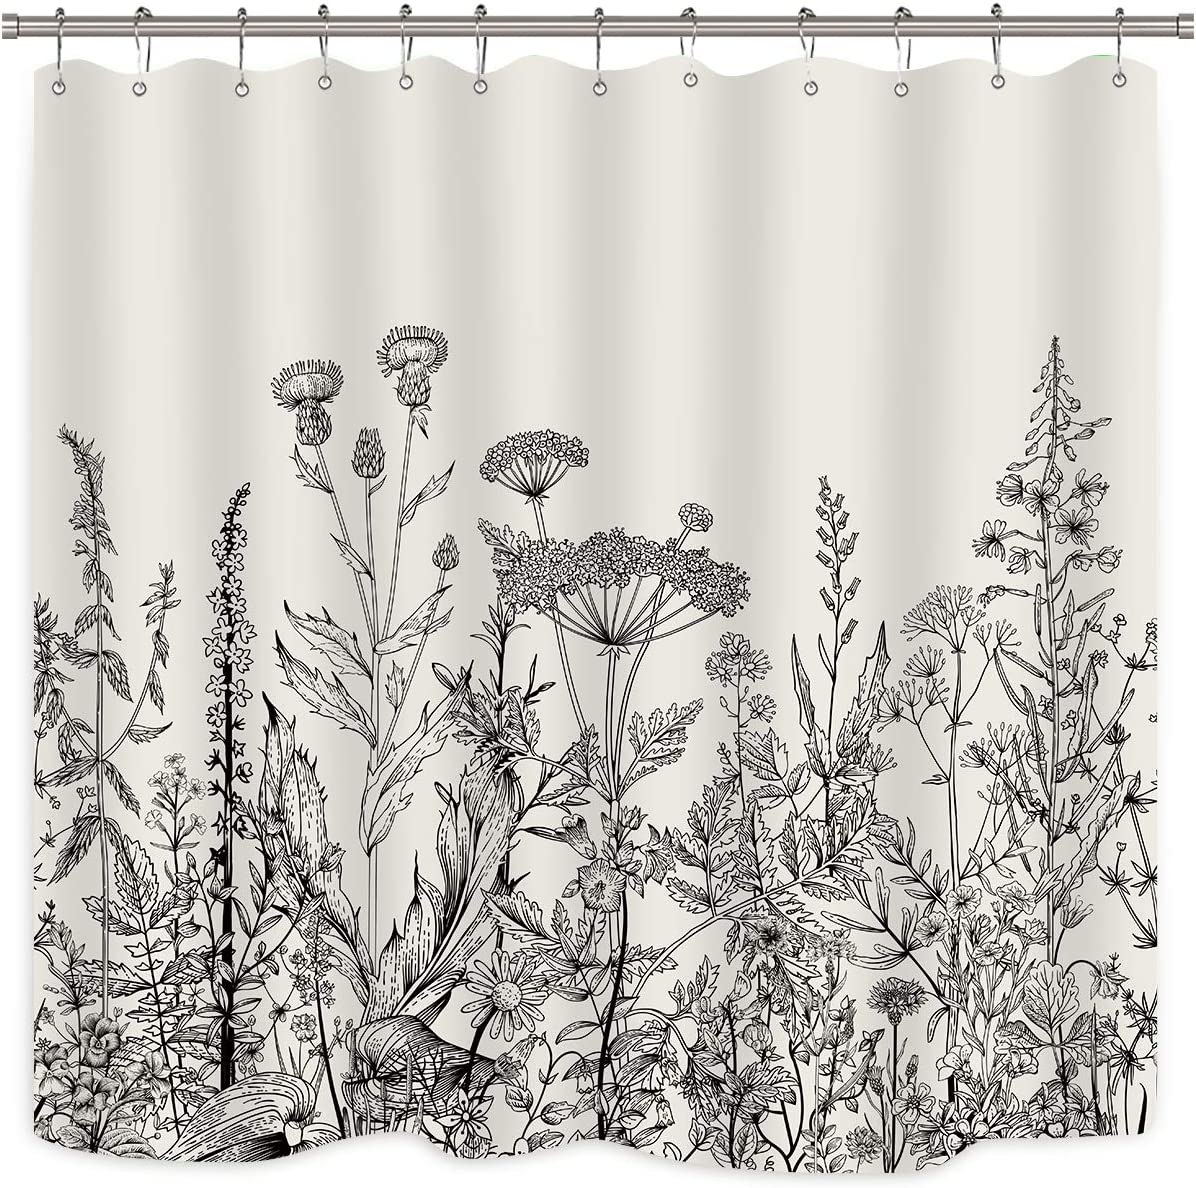 Riyidecor Wild Floral Shower Curtain Botanical Herbs Tulip Plant Nature Blossom Flower Leaf Sketch Gross Waterproof Fabric 72x72 Inch Polyester Bathroom Bathtub Decoration 12 Pack Plastic Hooks